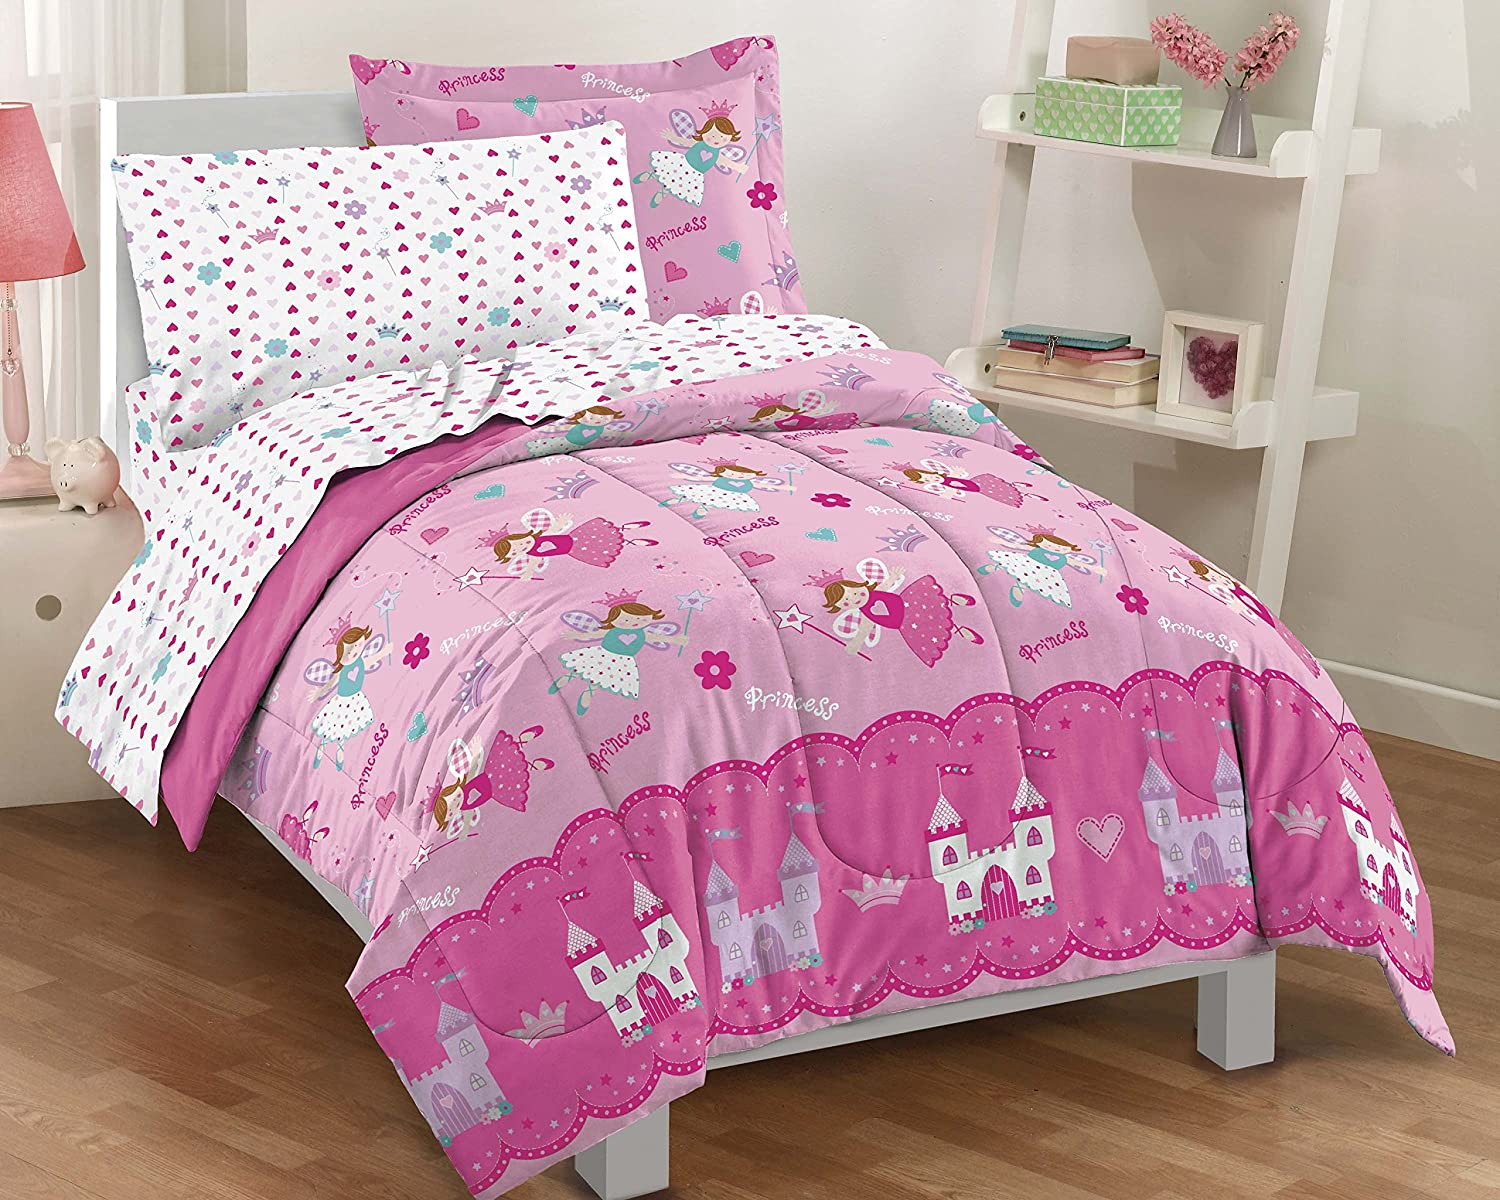 Pink Rose Girls Bedding Sets Recipes With More